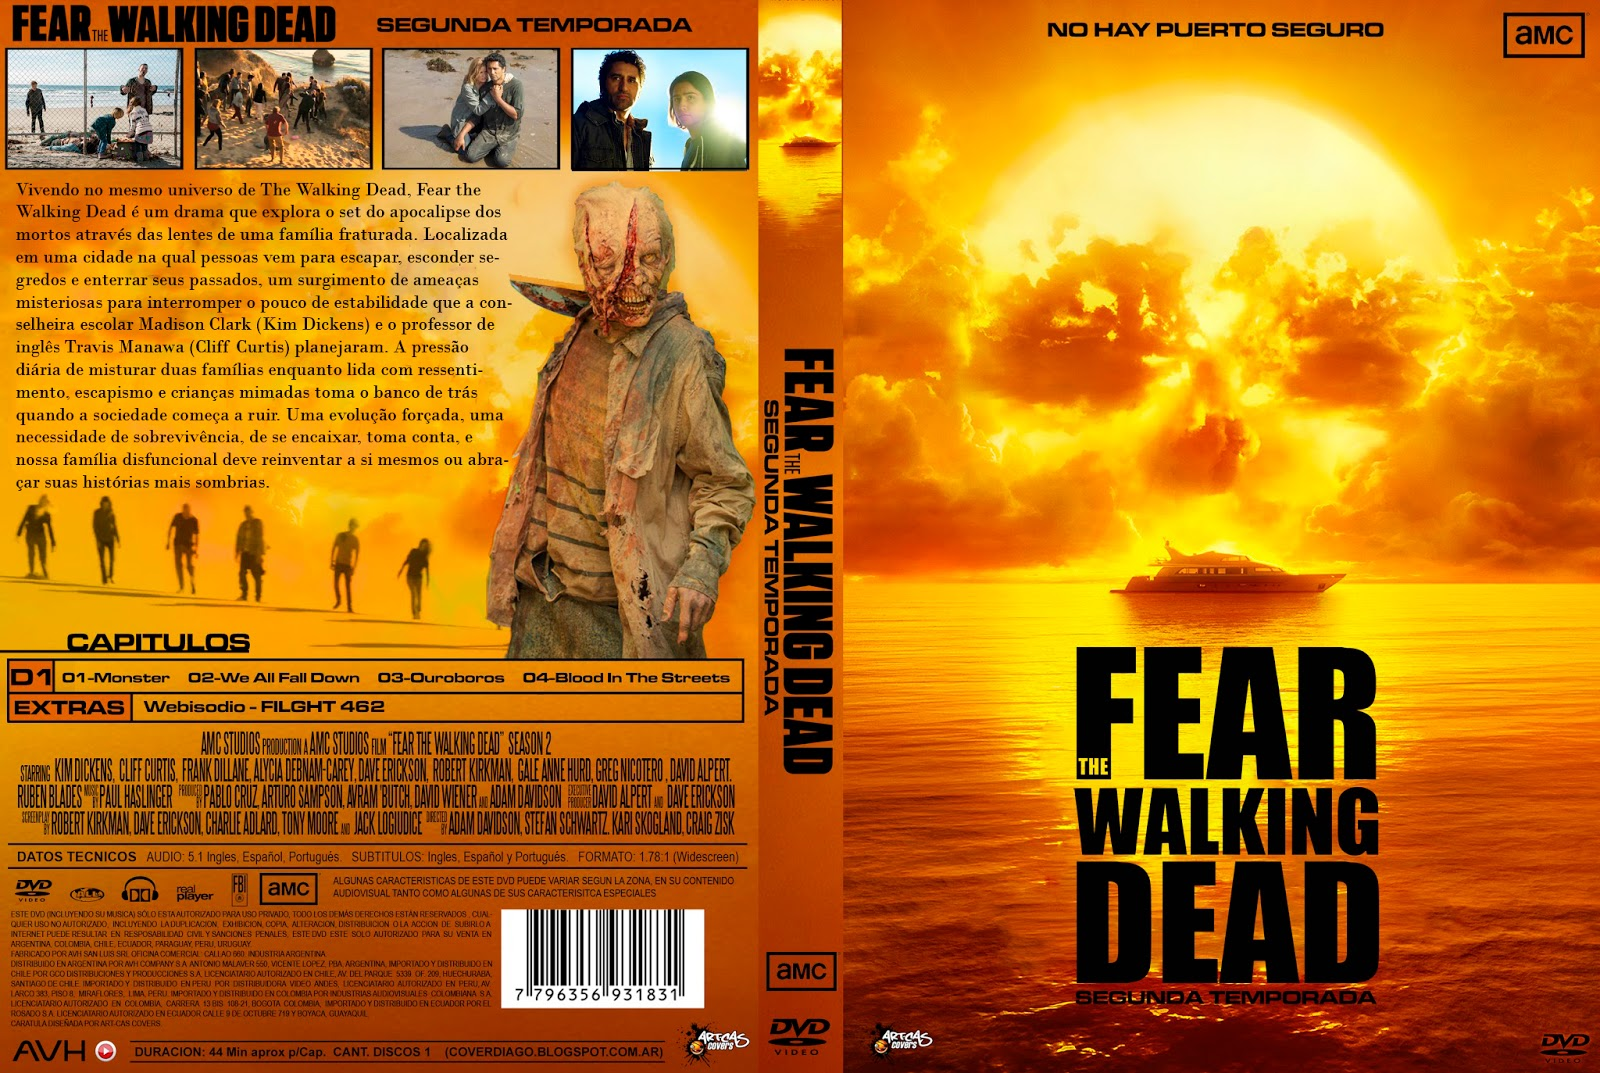 Resultado de imagem para FEAR THE WALKING DEAD SEASON 2 COVER DVD